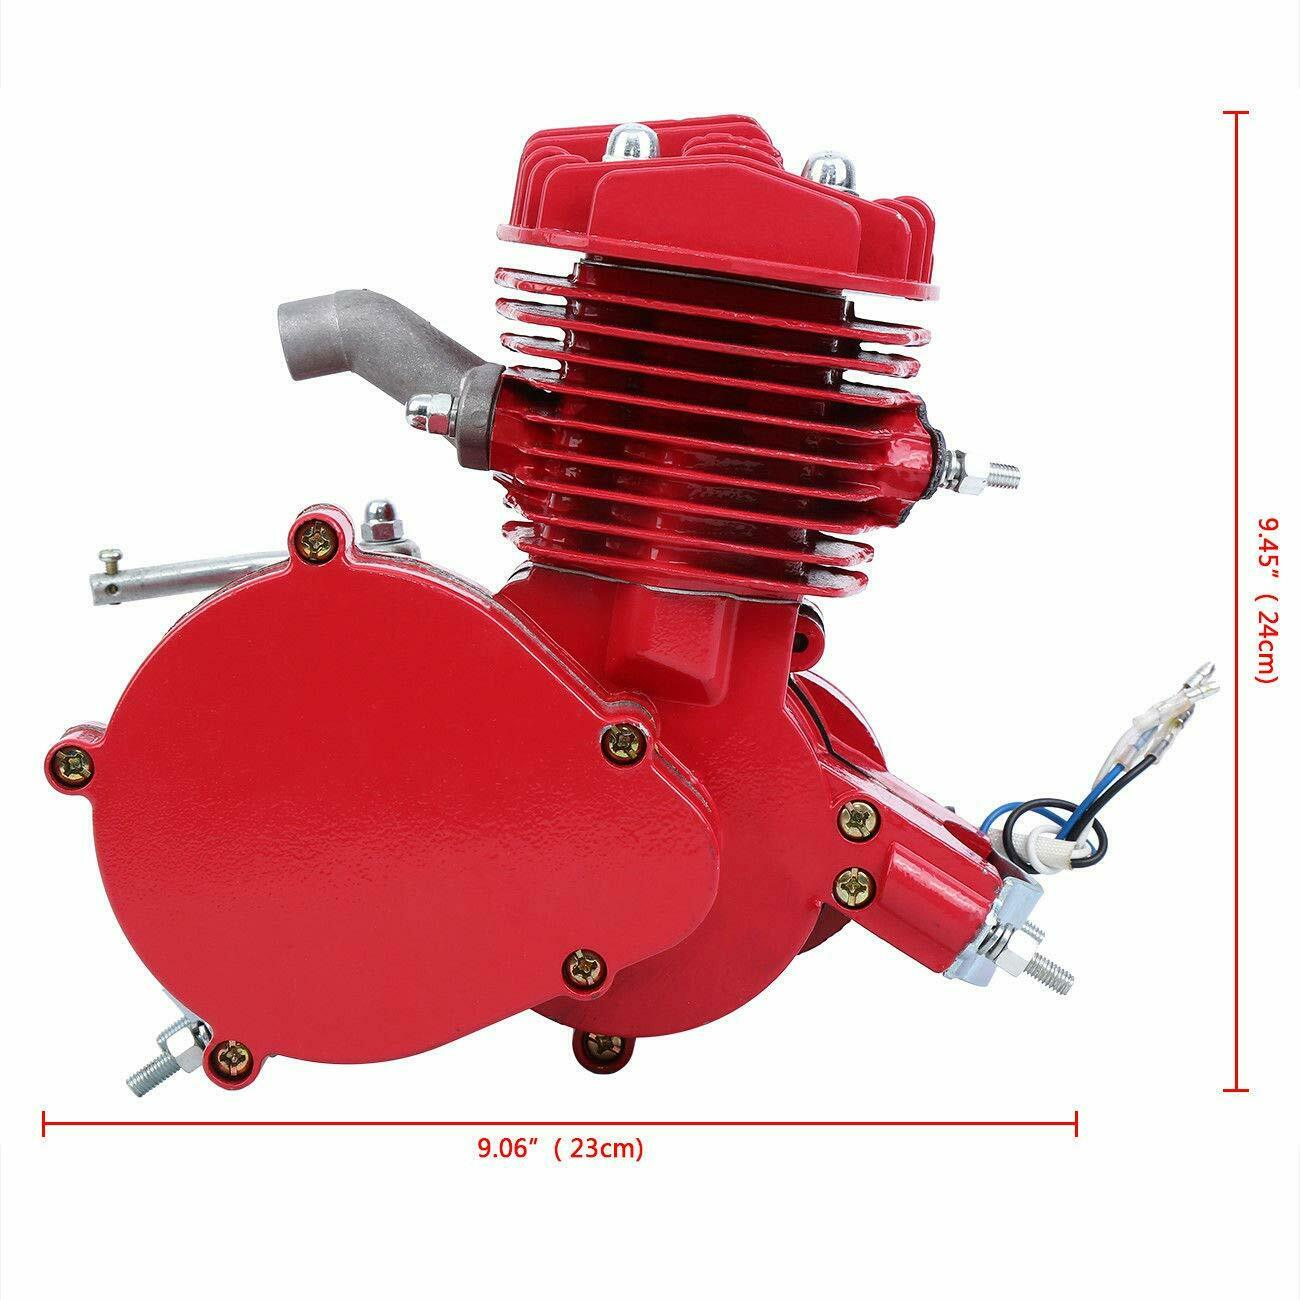 Red, 80CC Samger Samger 2 Stroke Motor Conversion Kit Pedal Cycle Petrol Gas Motorized Engine Kit for Motorized Bike